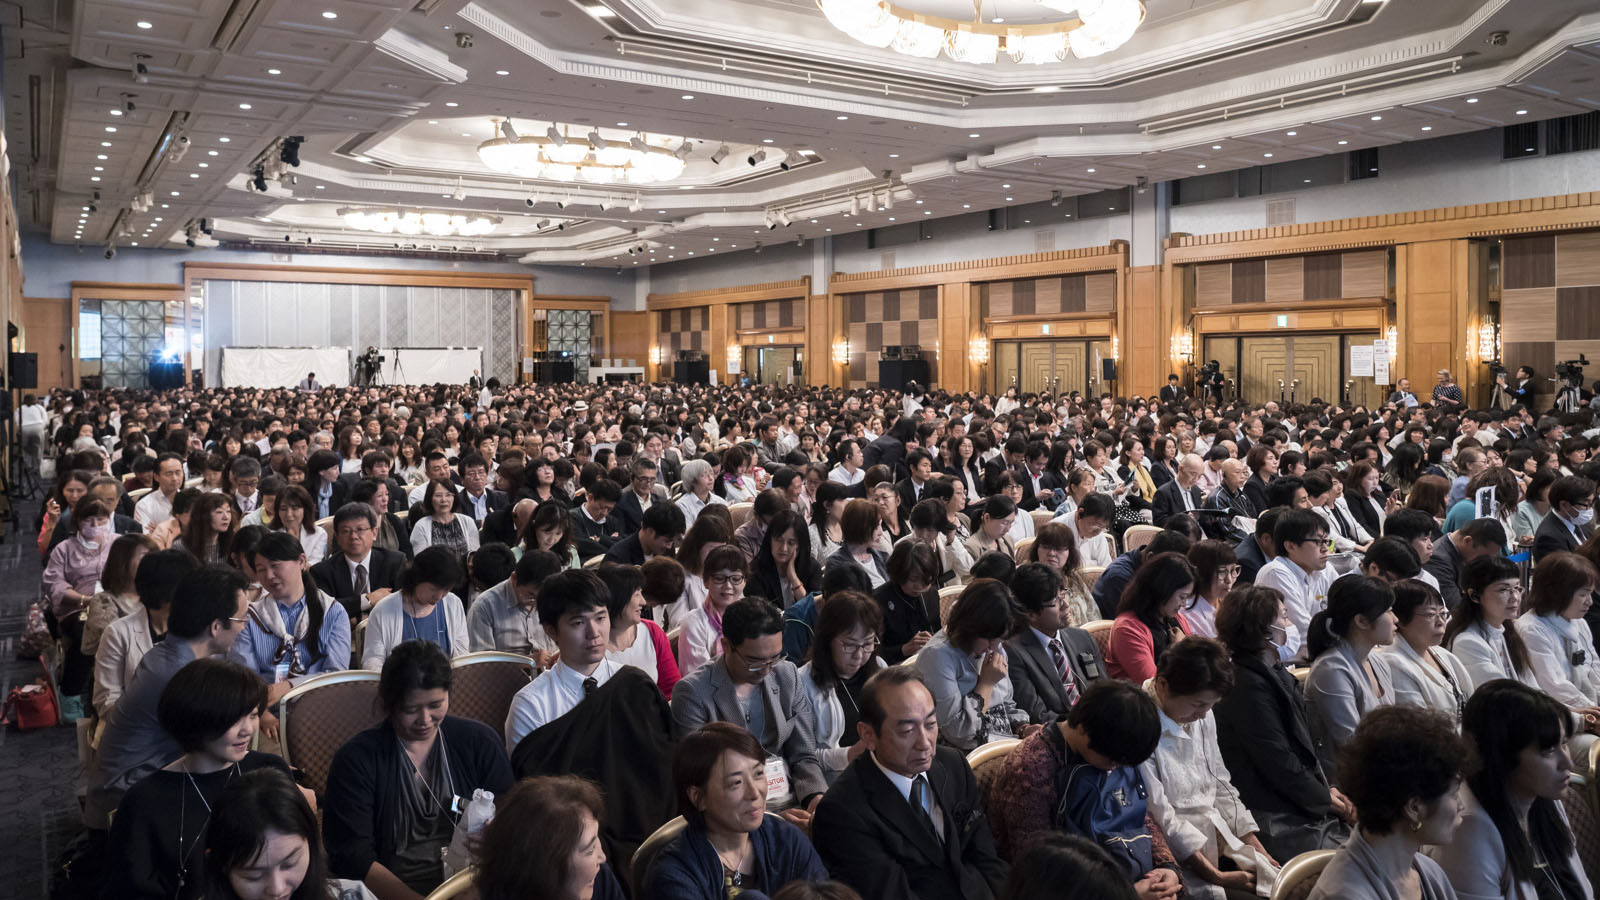 Over 2,000 participants pack into the conference hall at the start of the 2019 Interfaith Forum.